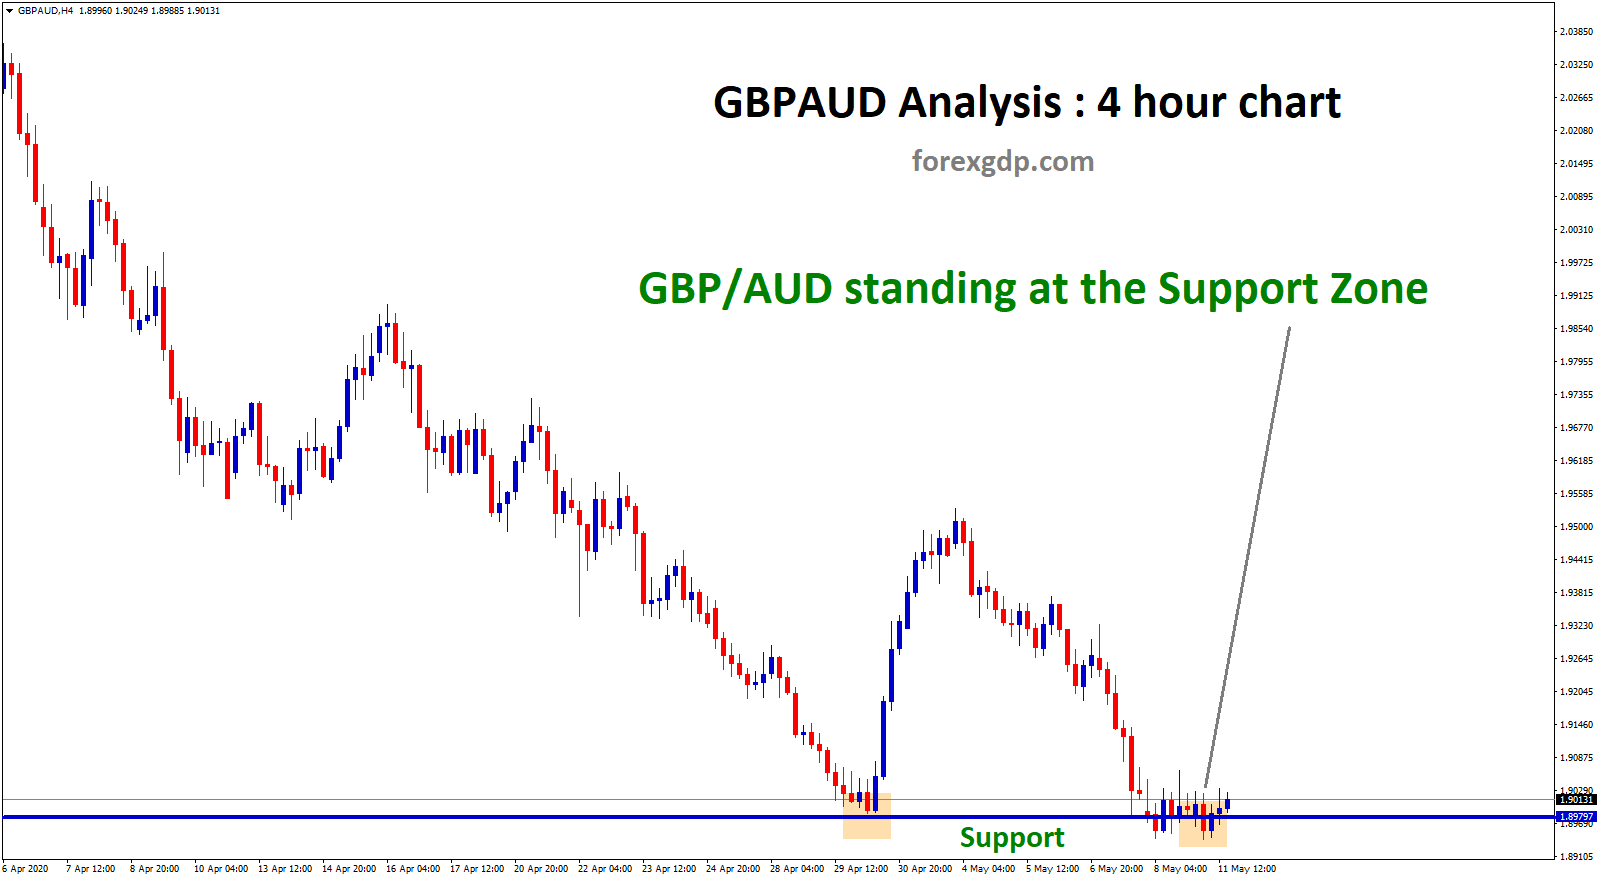 gbpaud will rebound from the support zone